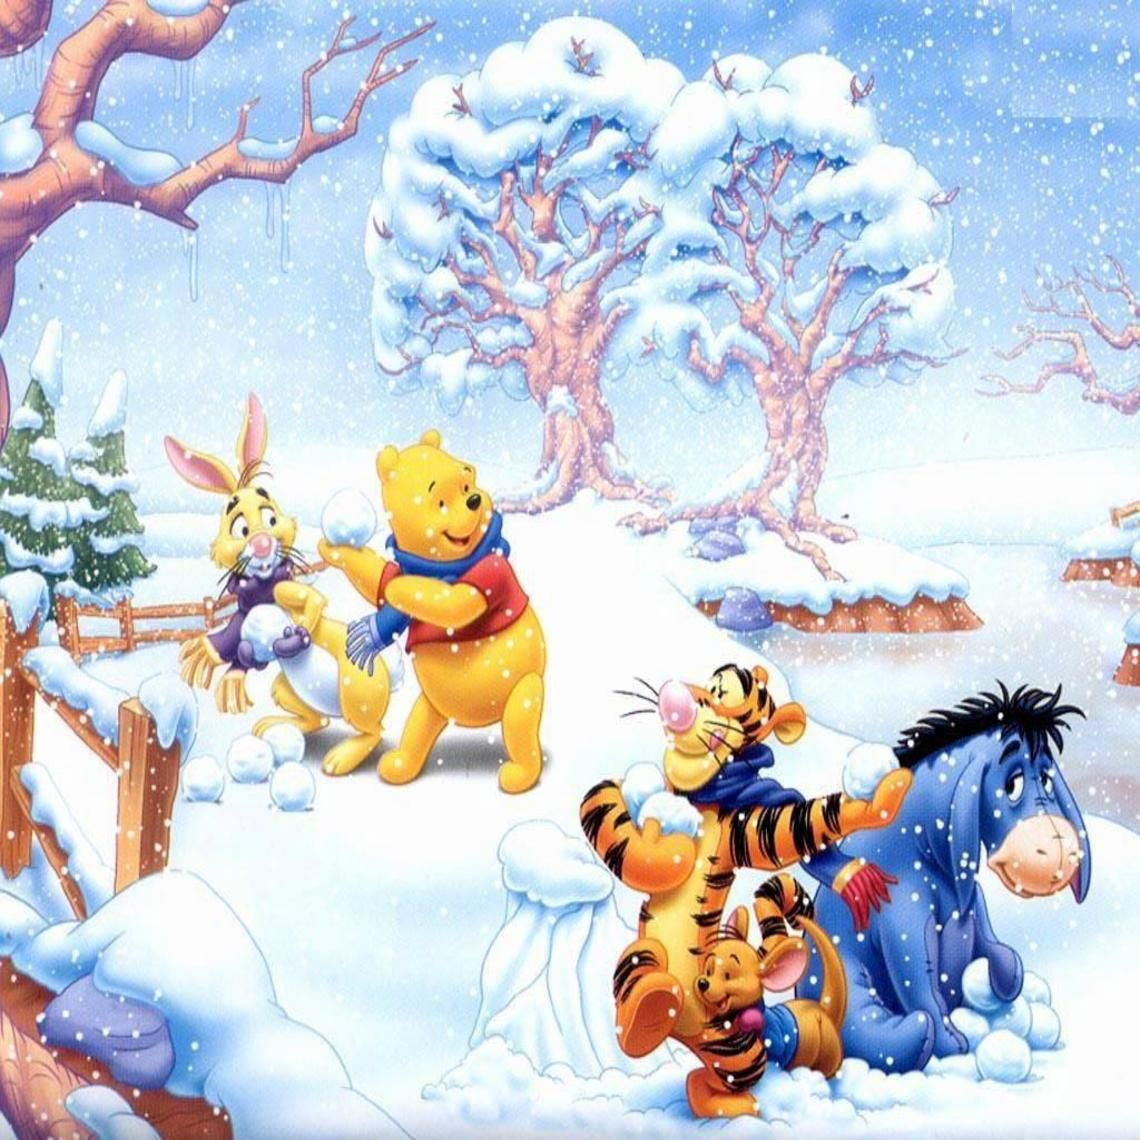 Winnie The Pooh And Snowball Fight Winnie The Pooh Christmas Winnie The Pooh Cute Winnie The Pooh